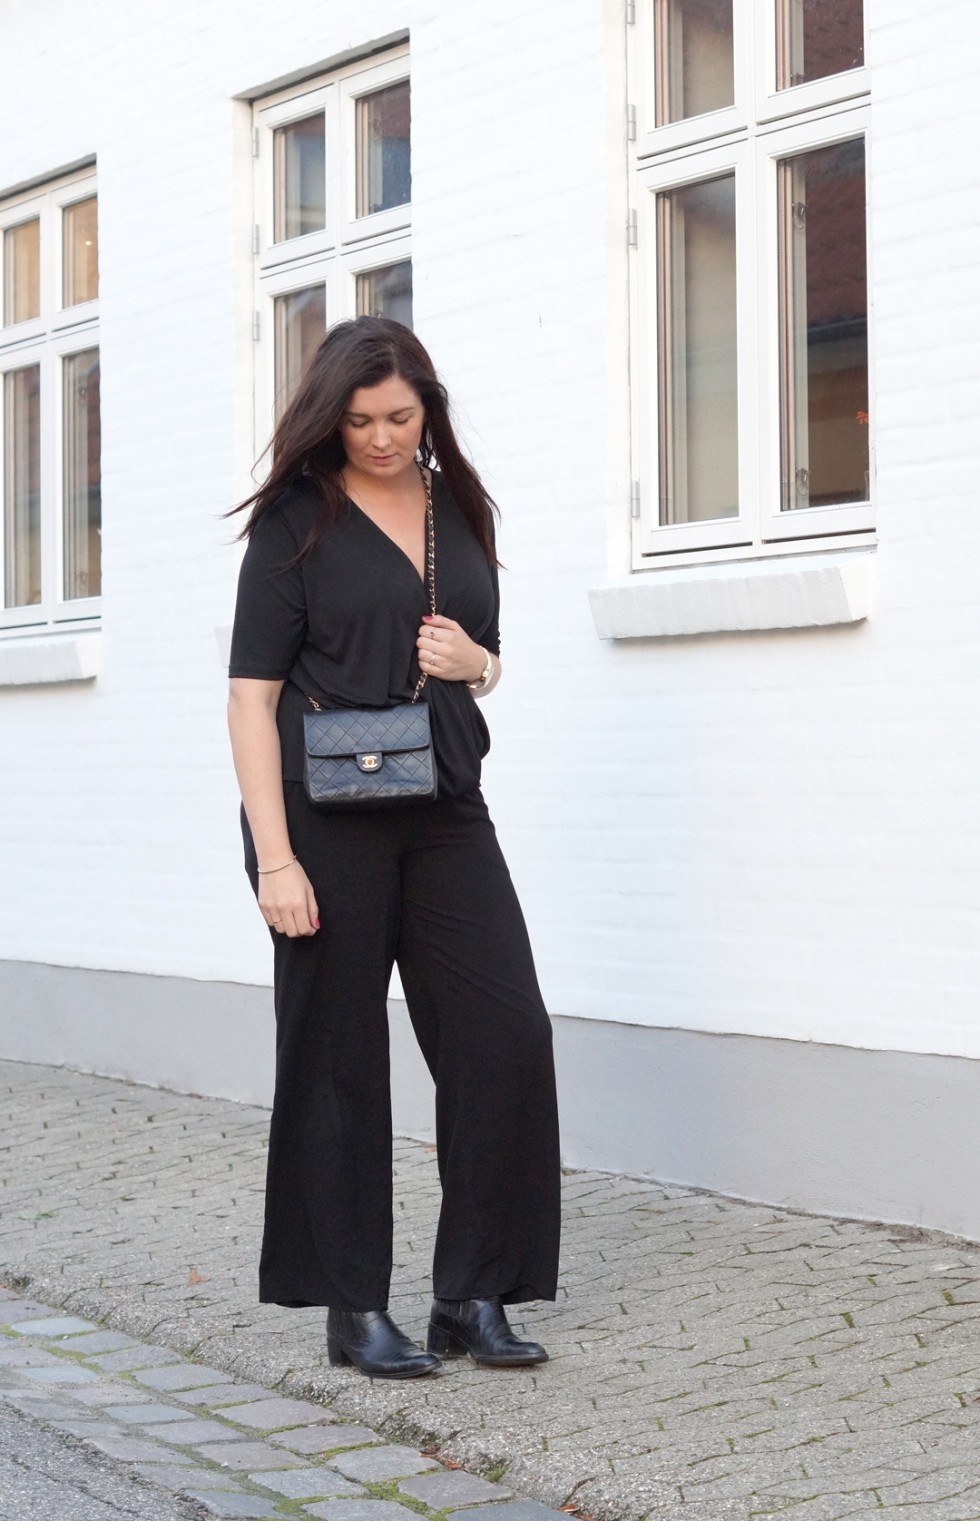 OUTFIT: ALL BLACK